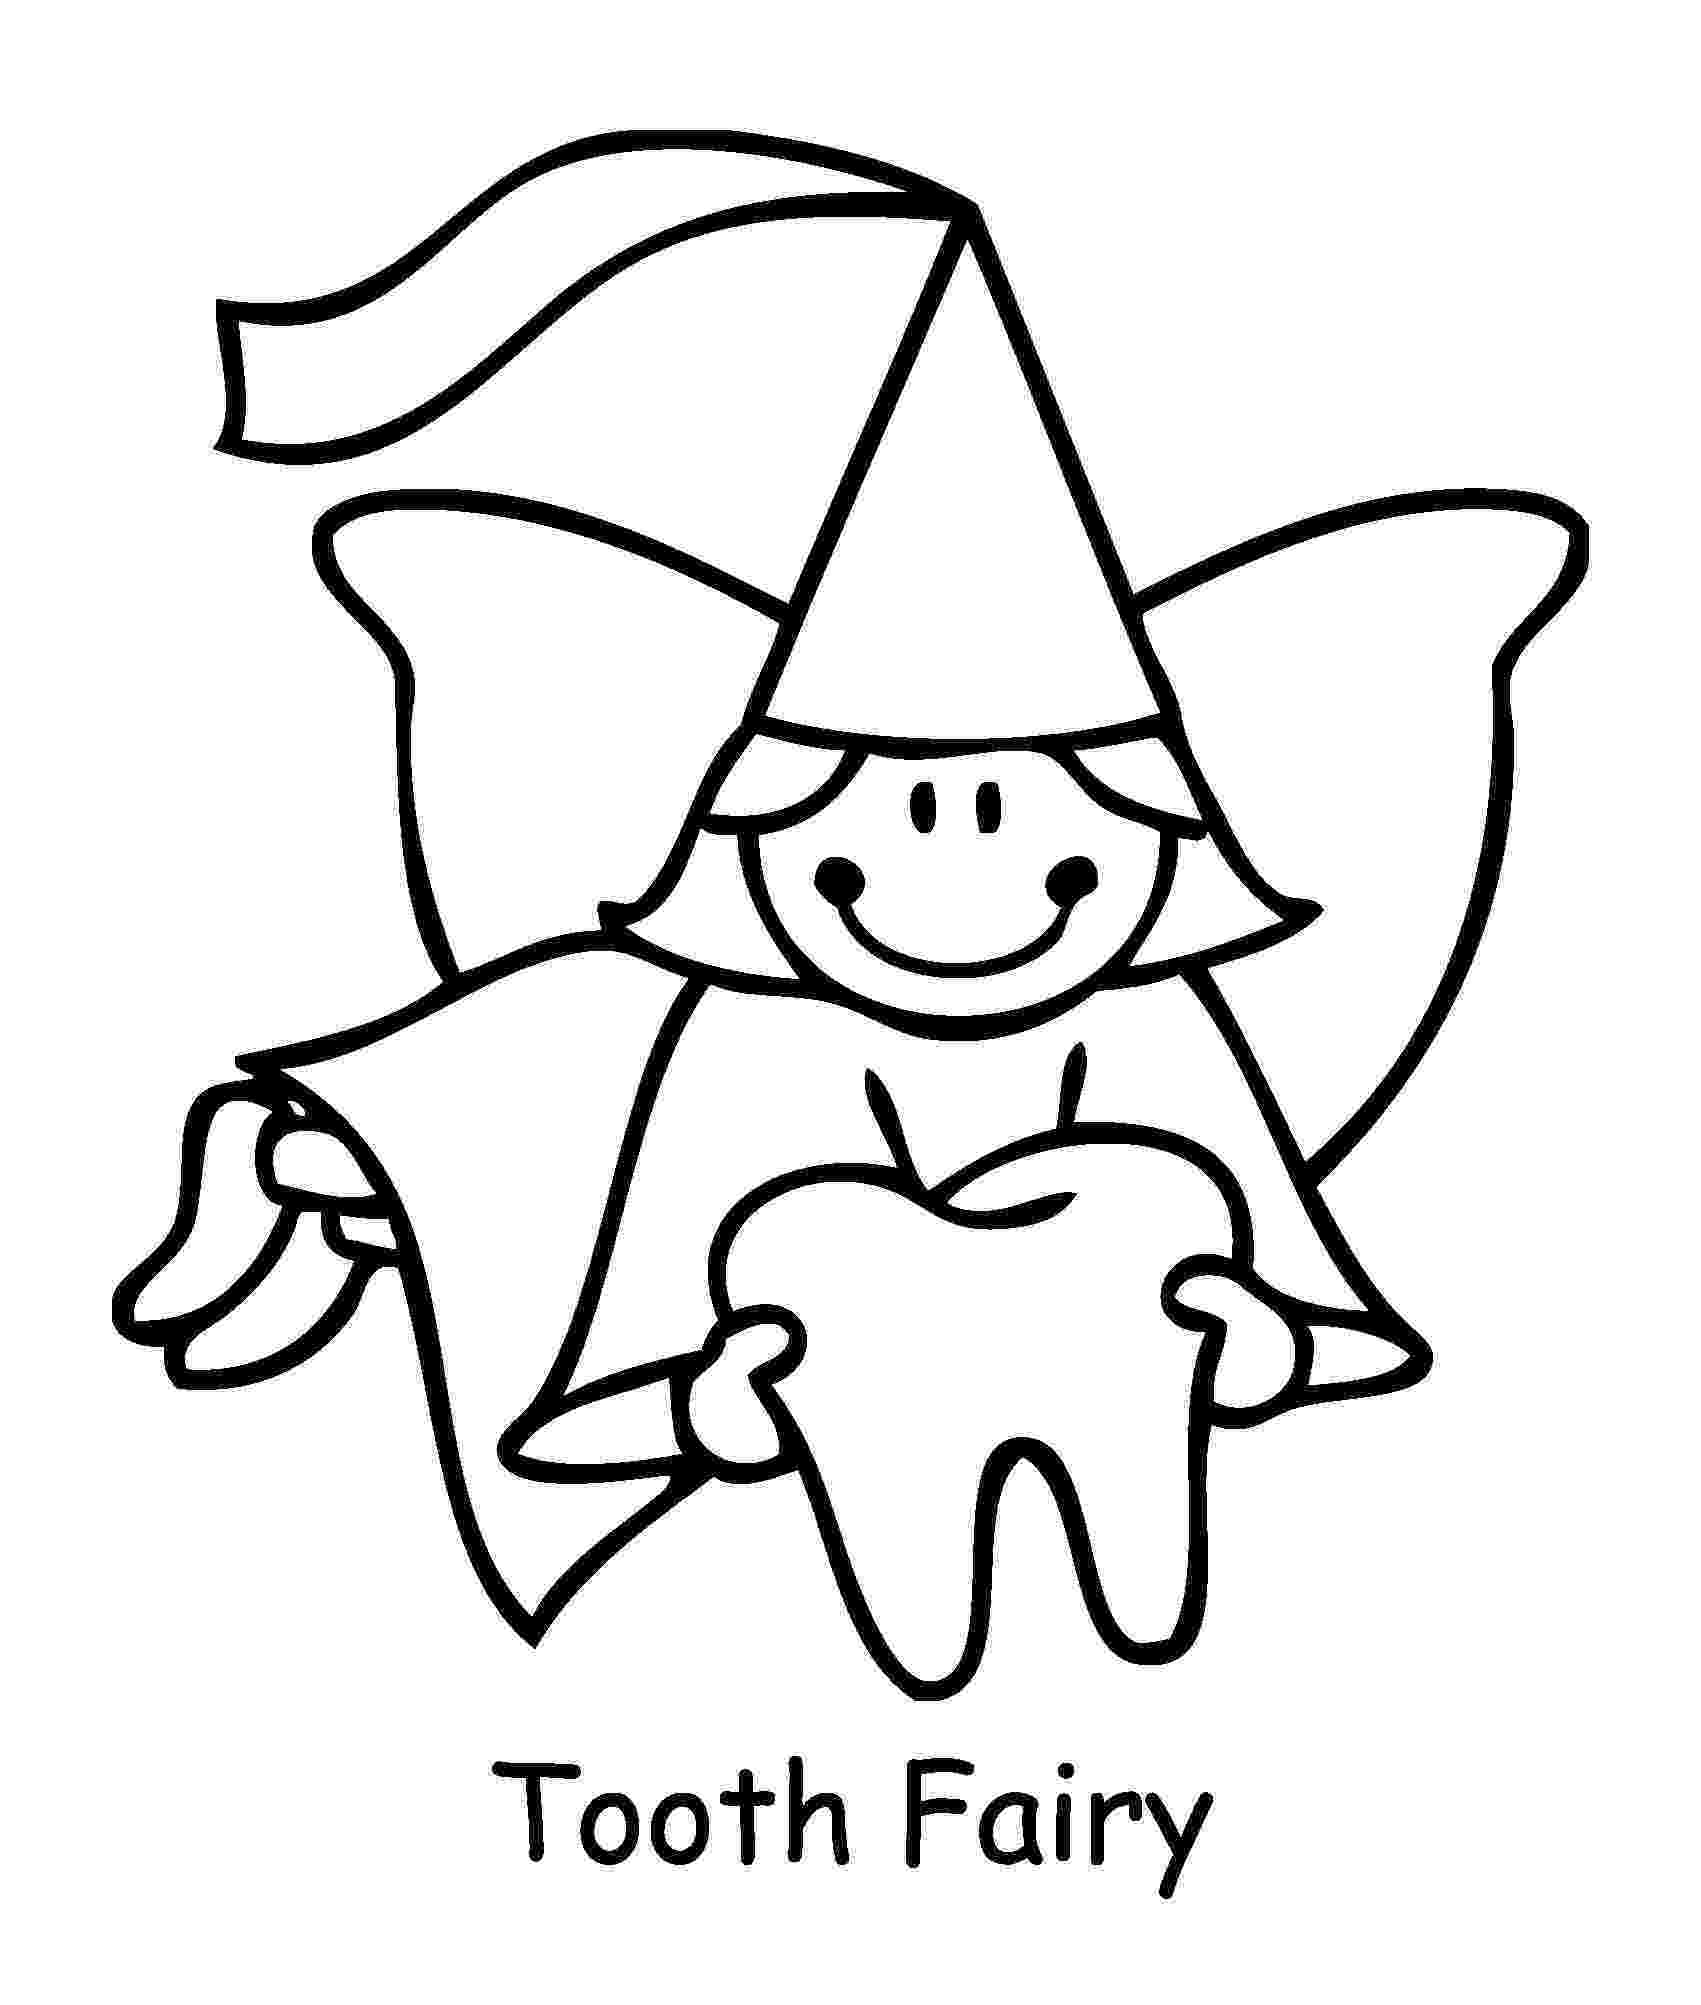 teeth coloring page 10 toothy adult coloring pages printable off the cusp page teeth coloring